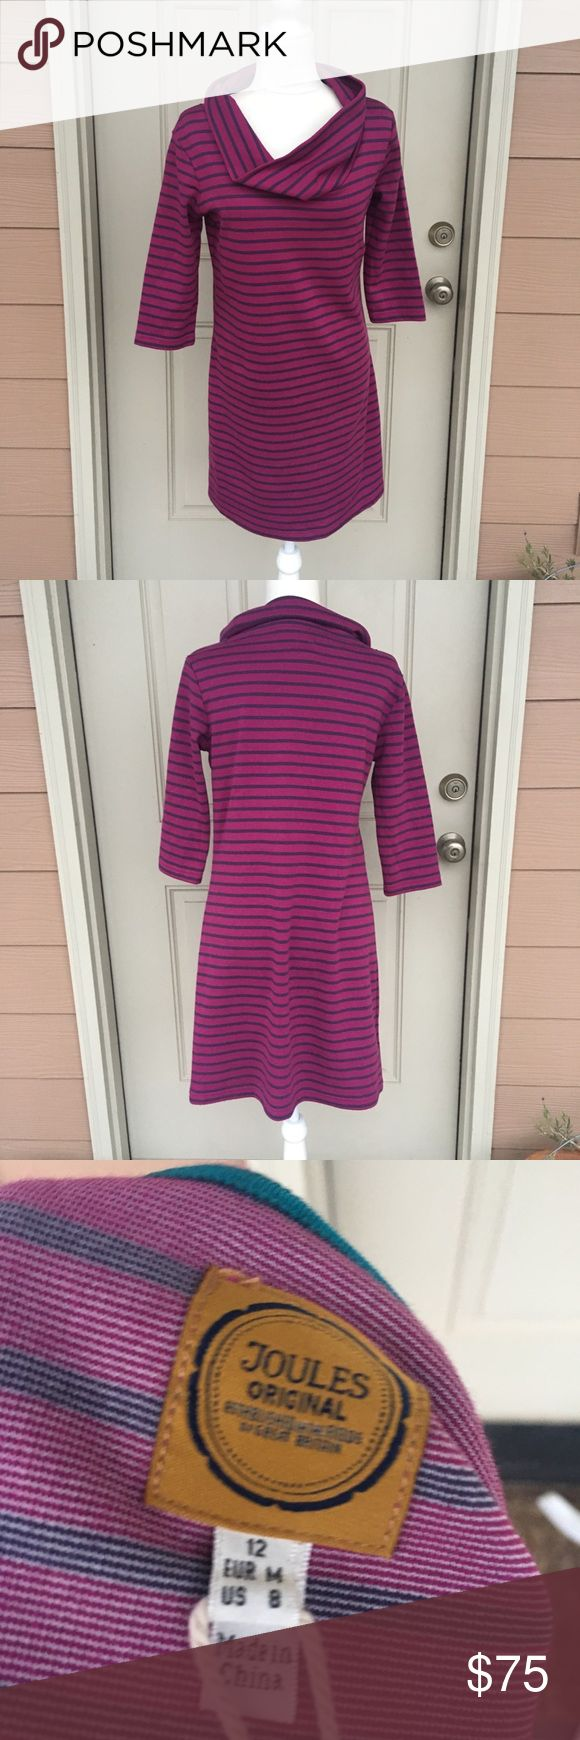 💥NWT💥 Joules Dress Joules Dress purchased at a golf tournament and never worn. So flattering! Fits true to size but is also stretchy and comfortable. From a smoke-free home :) Joules Dresses Midi